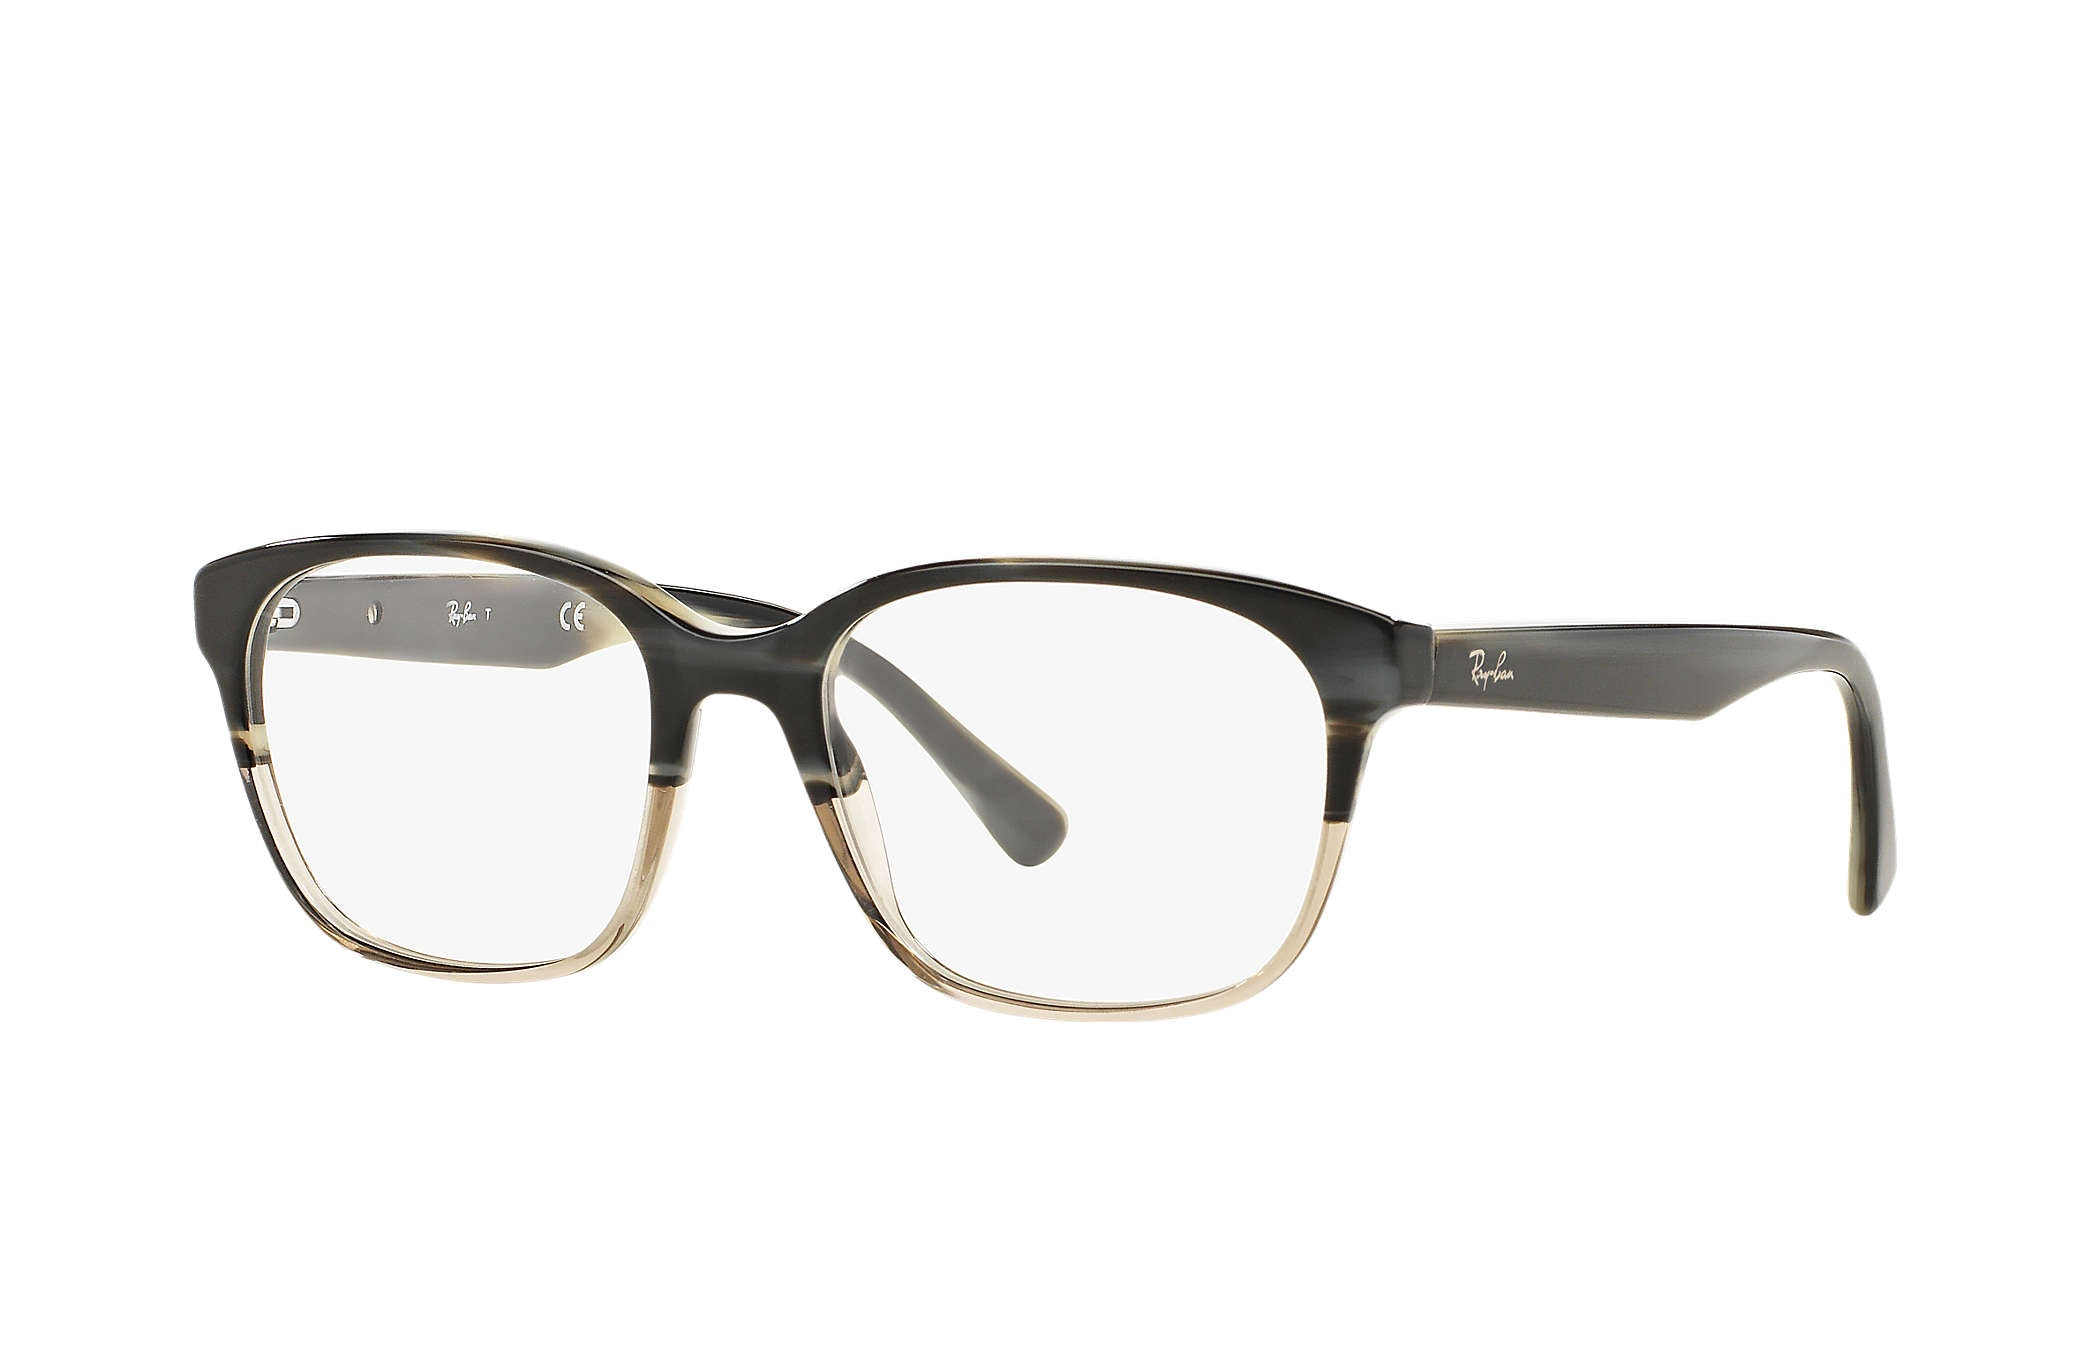 Ray Ban Eyeglasses RB5340 5540 RX-ABLE